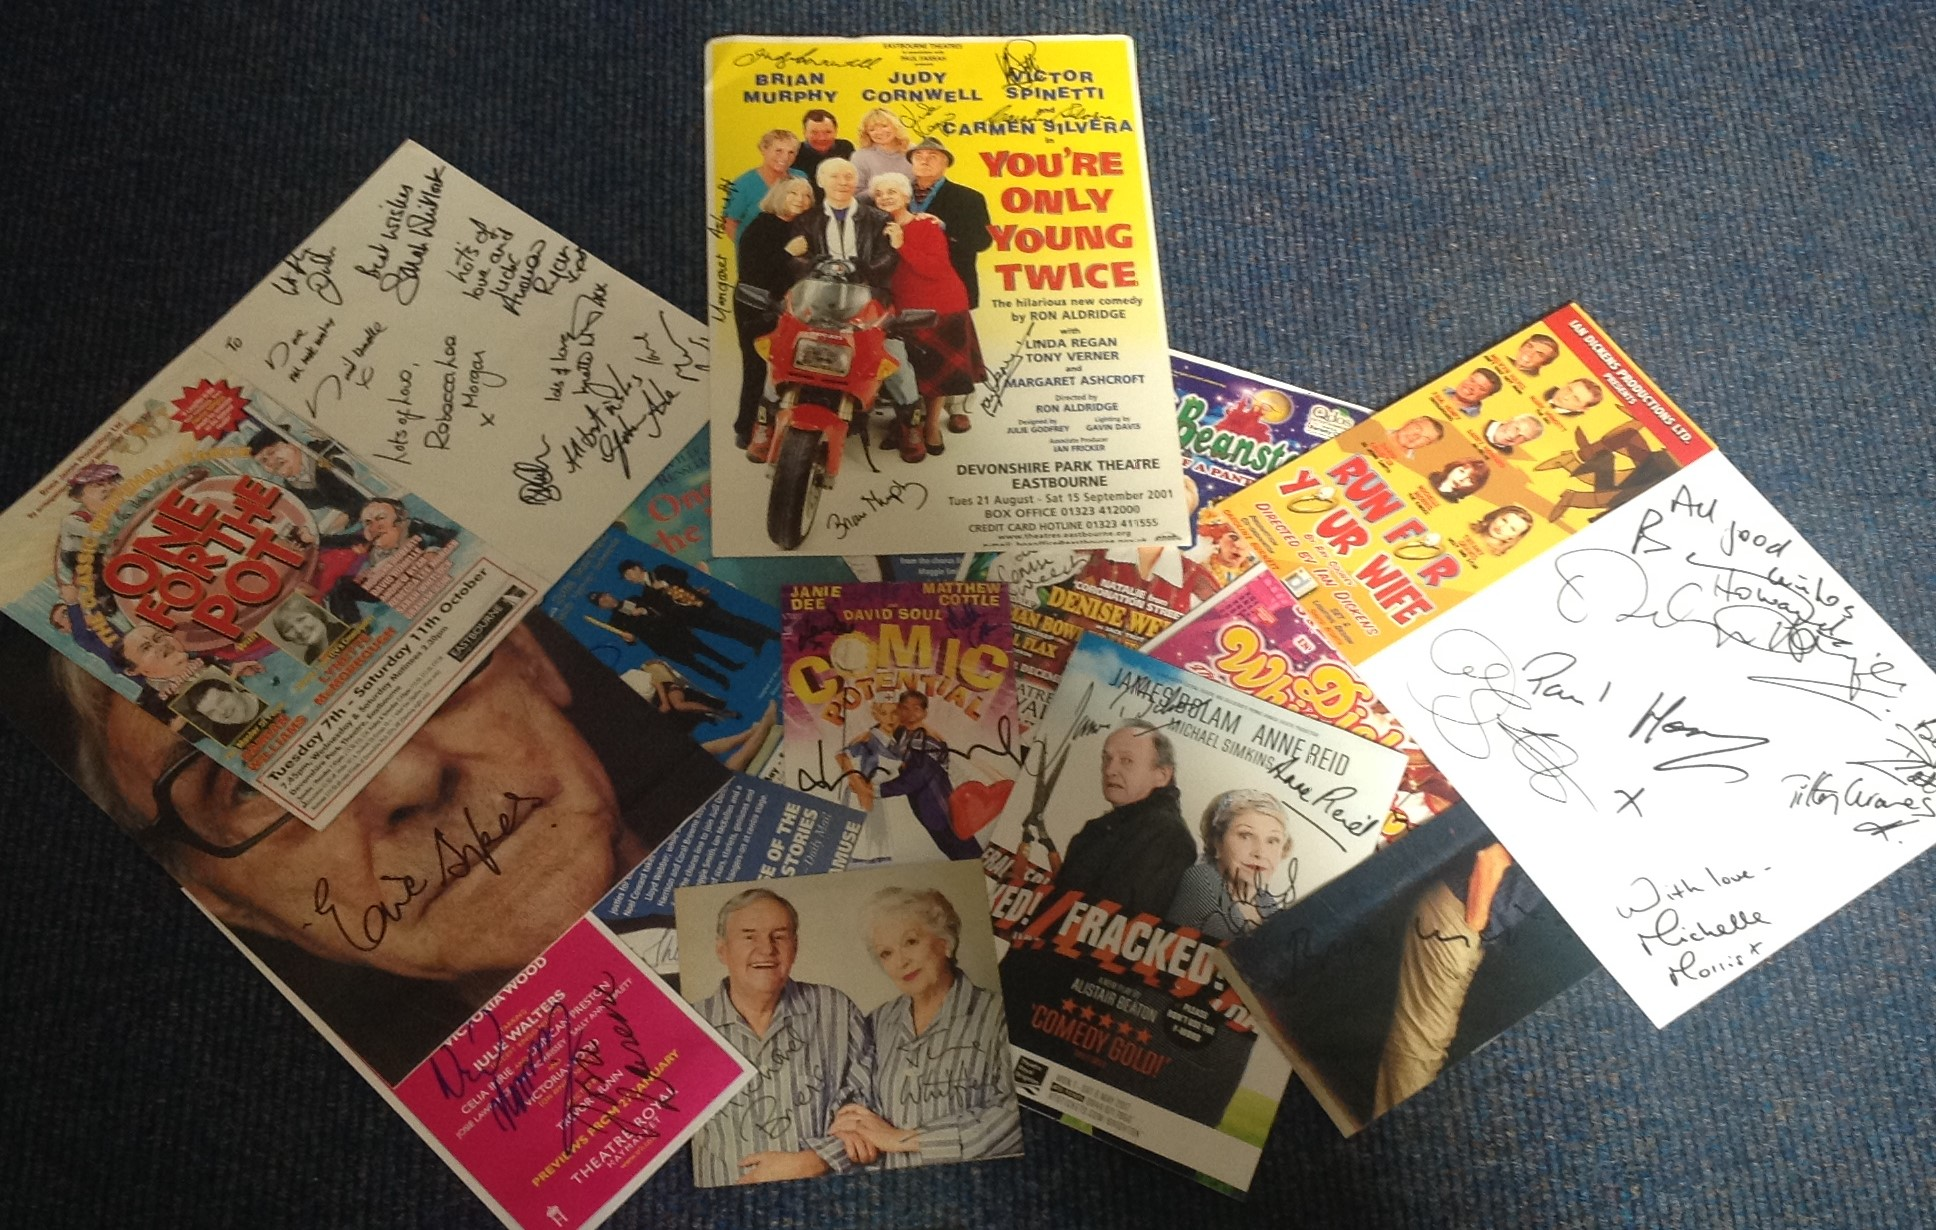 Lot 21 - Assorted TV/film signed collection. 17 items. Variety of flyers and newspaper photos all signed.